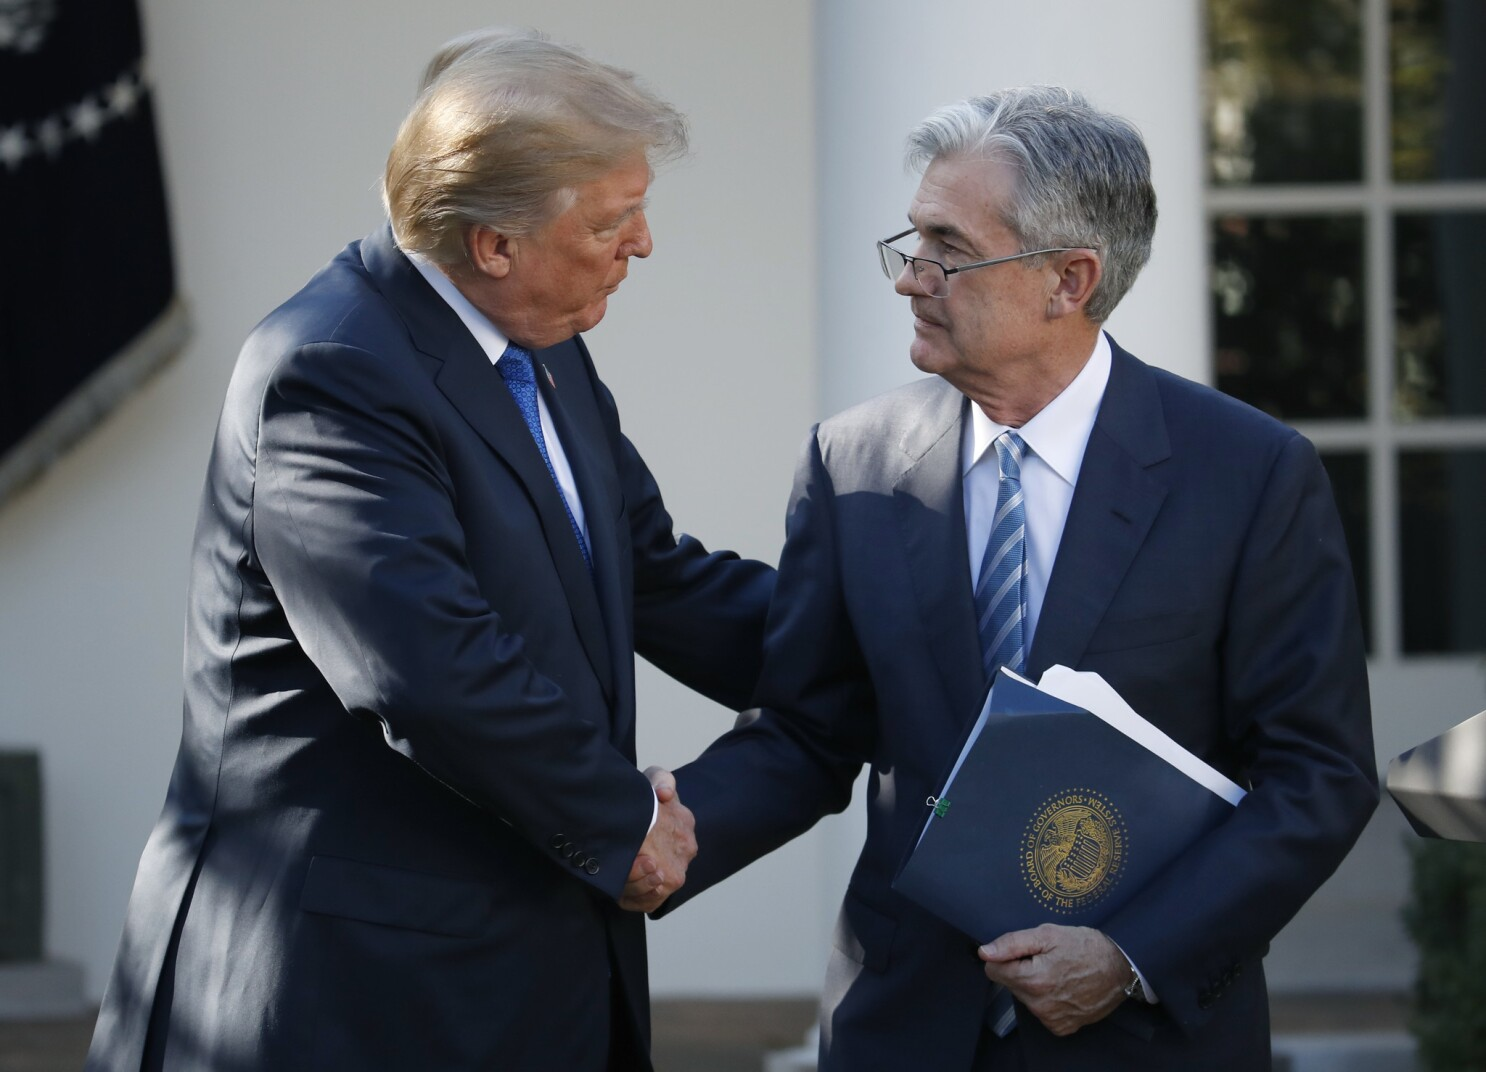 Opinion: Welcome, Jay Powell, to the ranks of Trump's public enemies